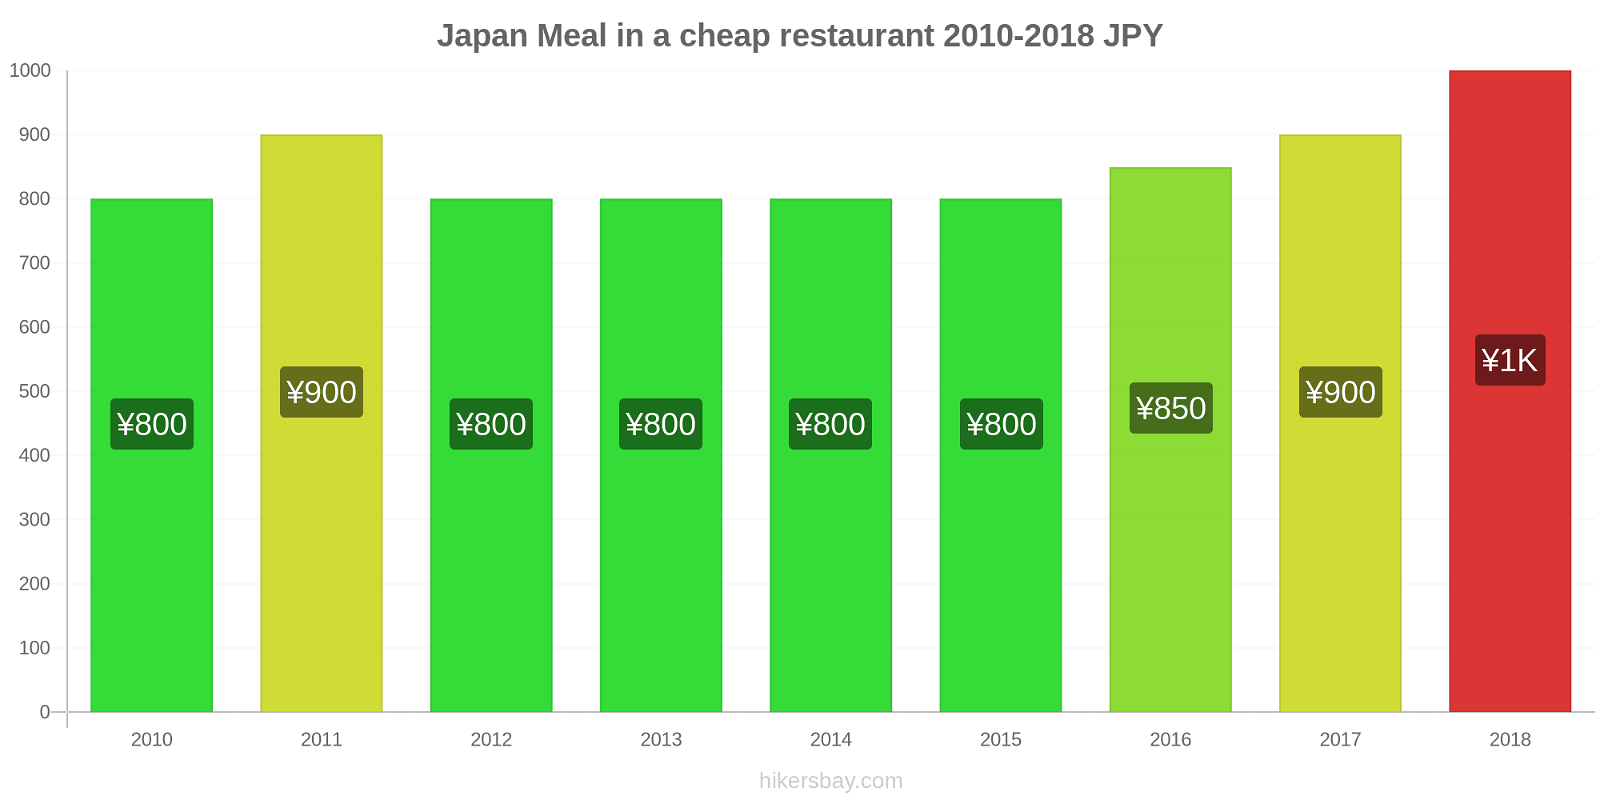 Japan price changes Meal in a cheap restaurant hikersbay.com